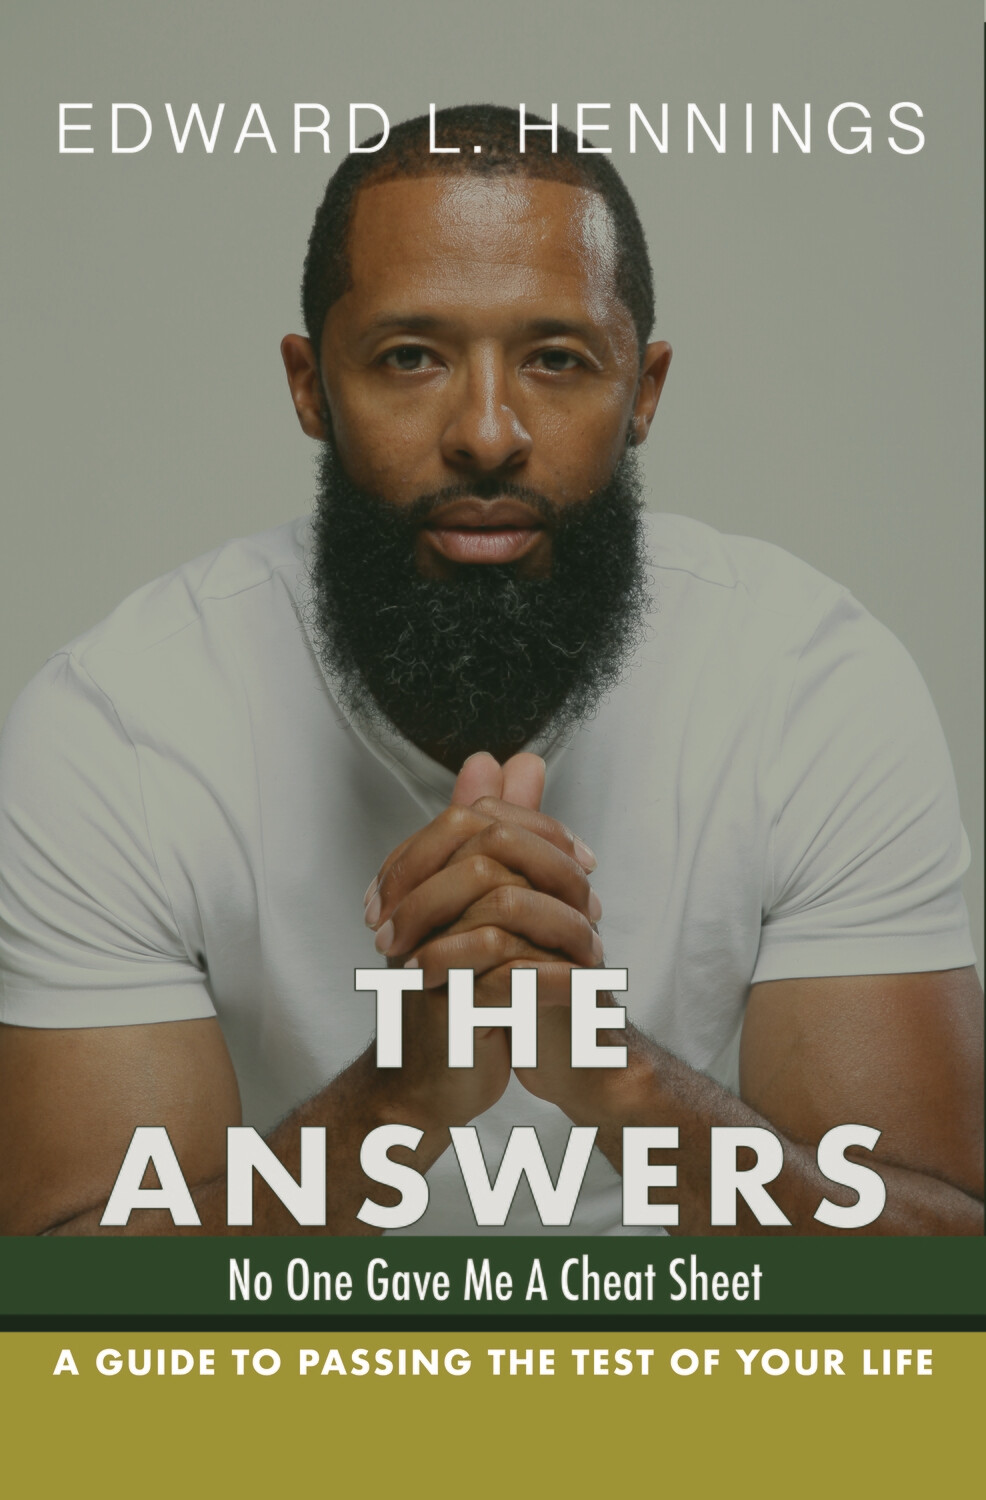 The Answers - A Guide to Passing the Test of Your Life